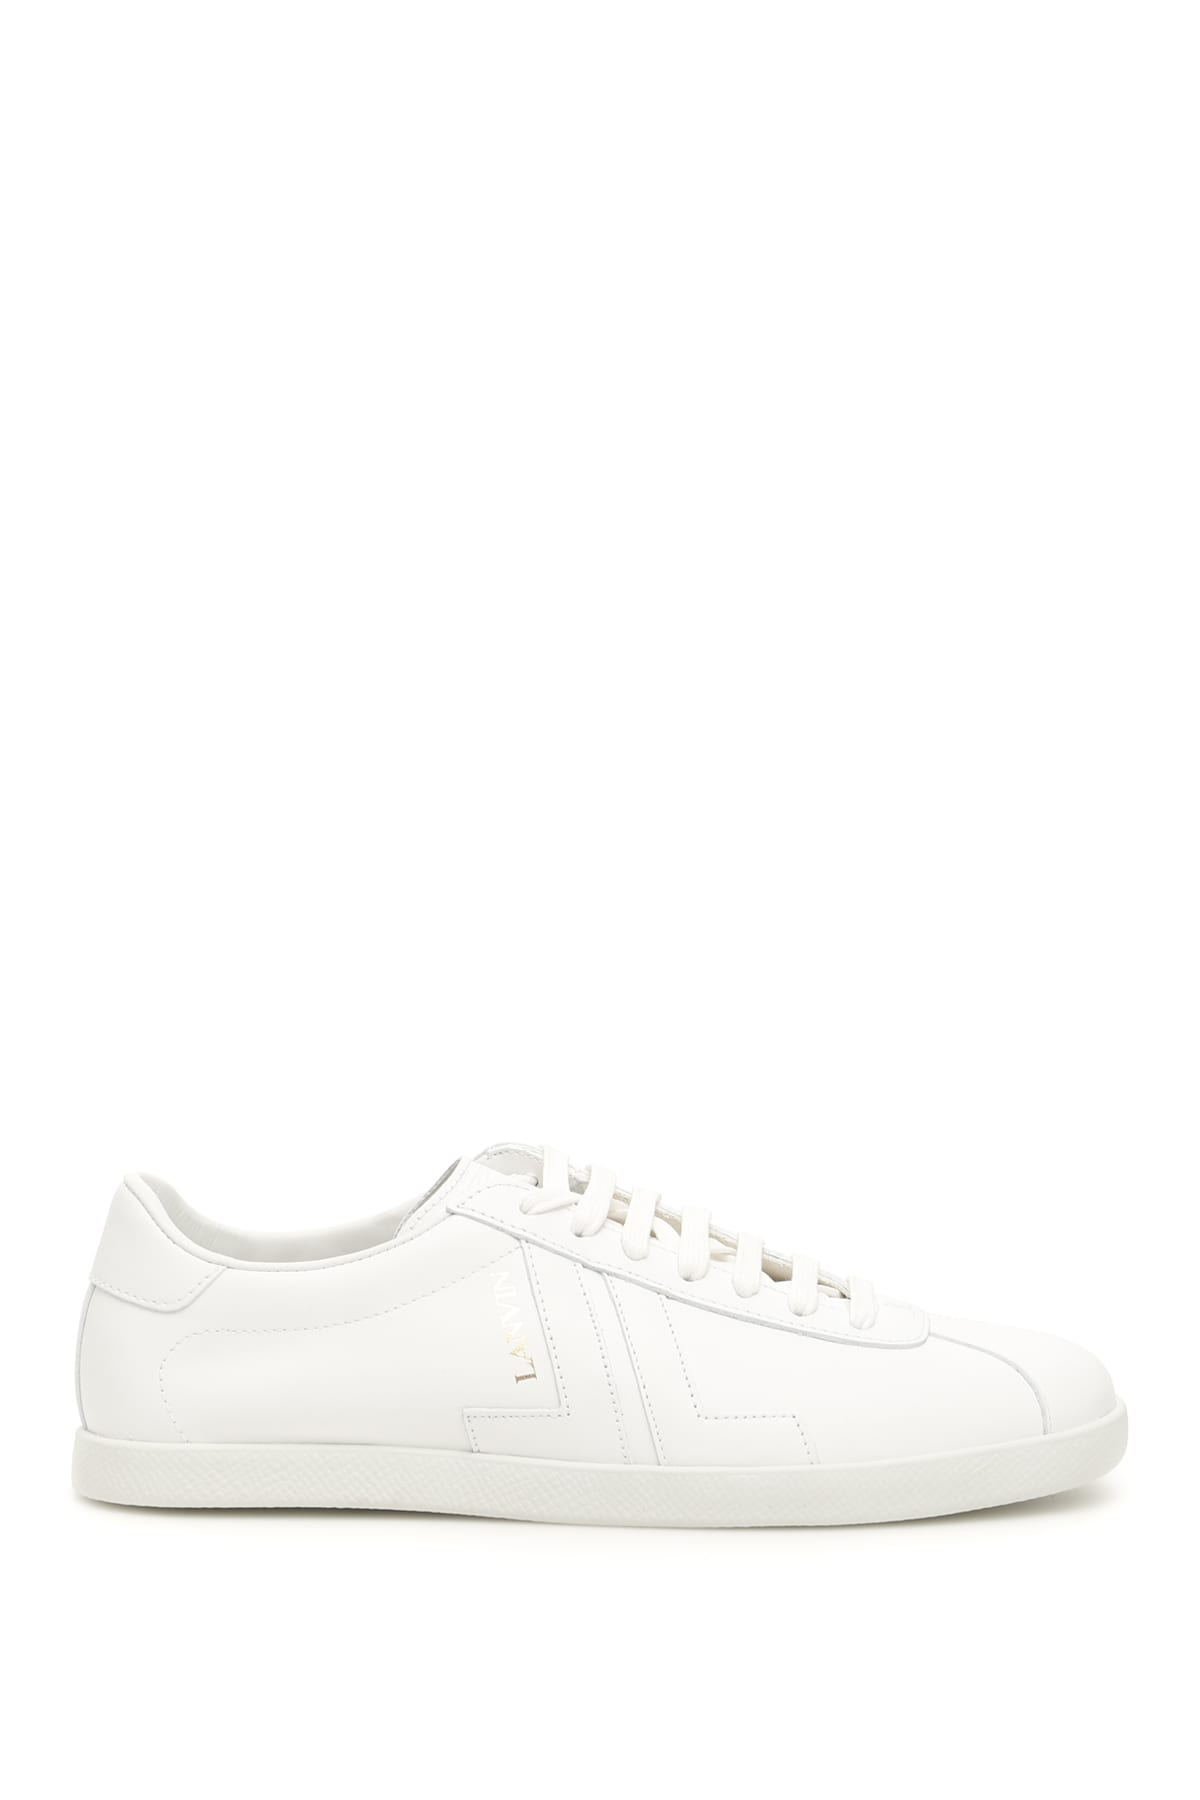 Lanvin Leather Jl Sneakers